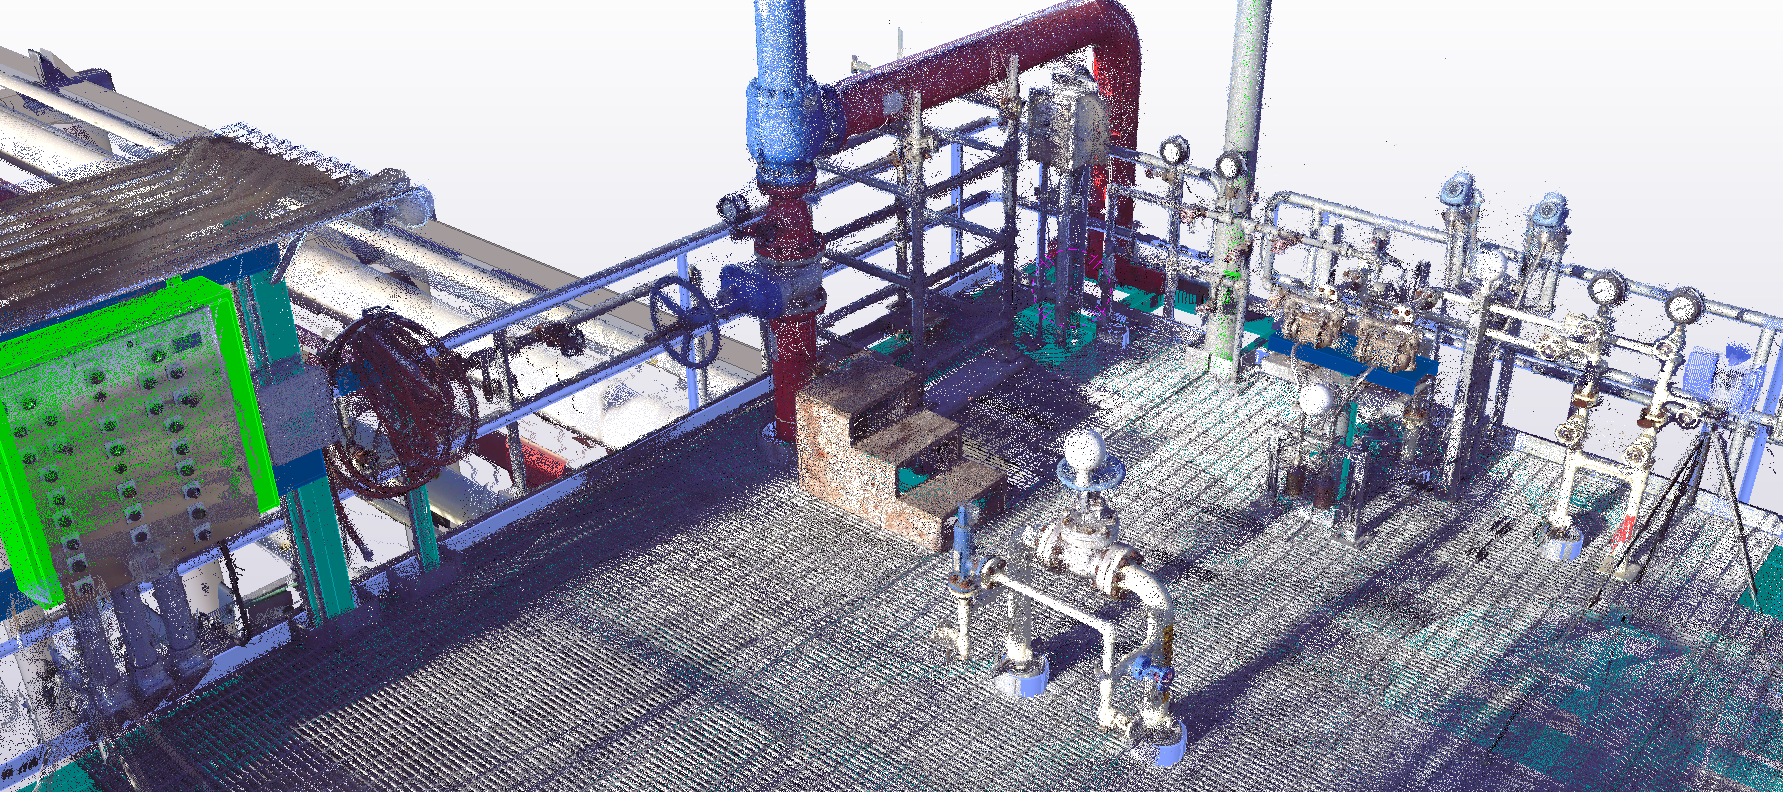 A typical industrial platform model overlaid with a laser scan